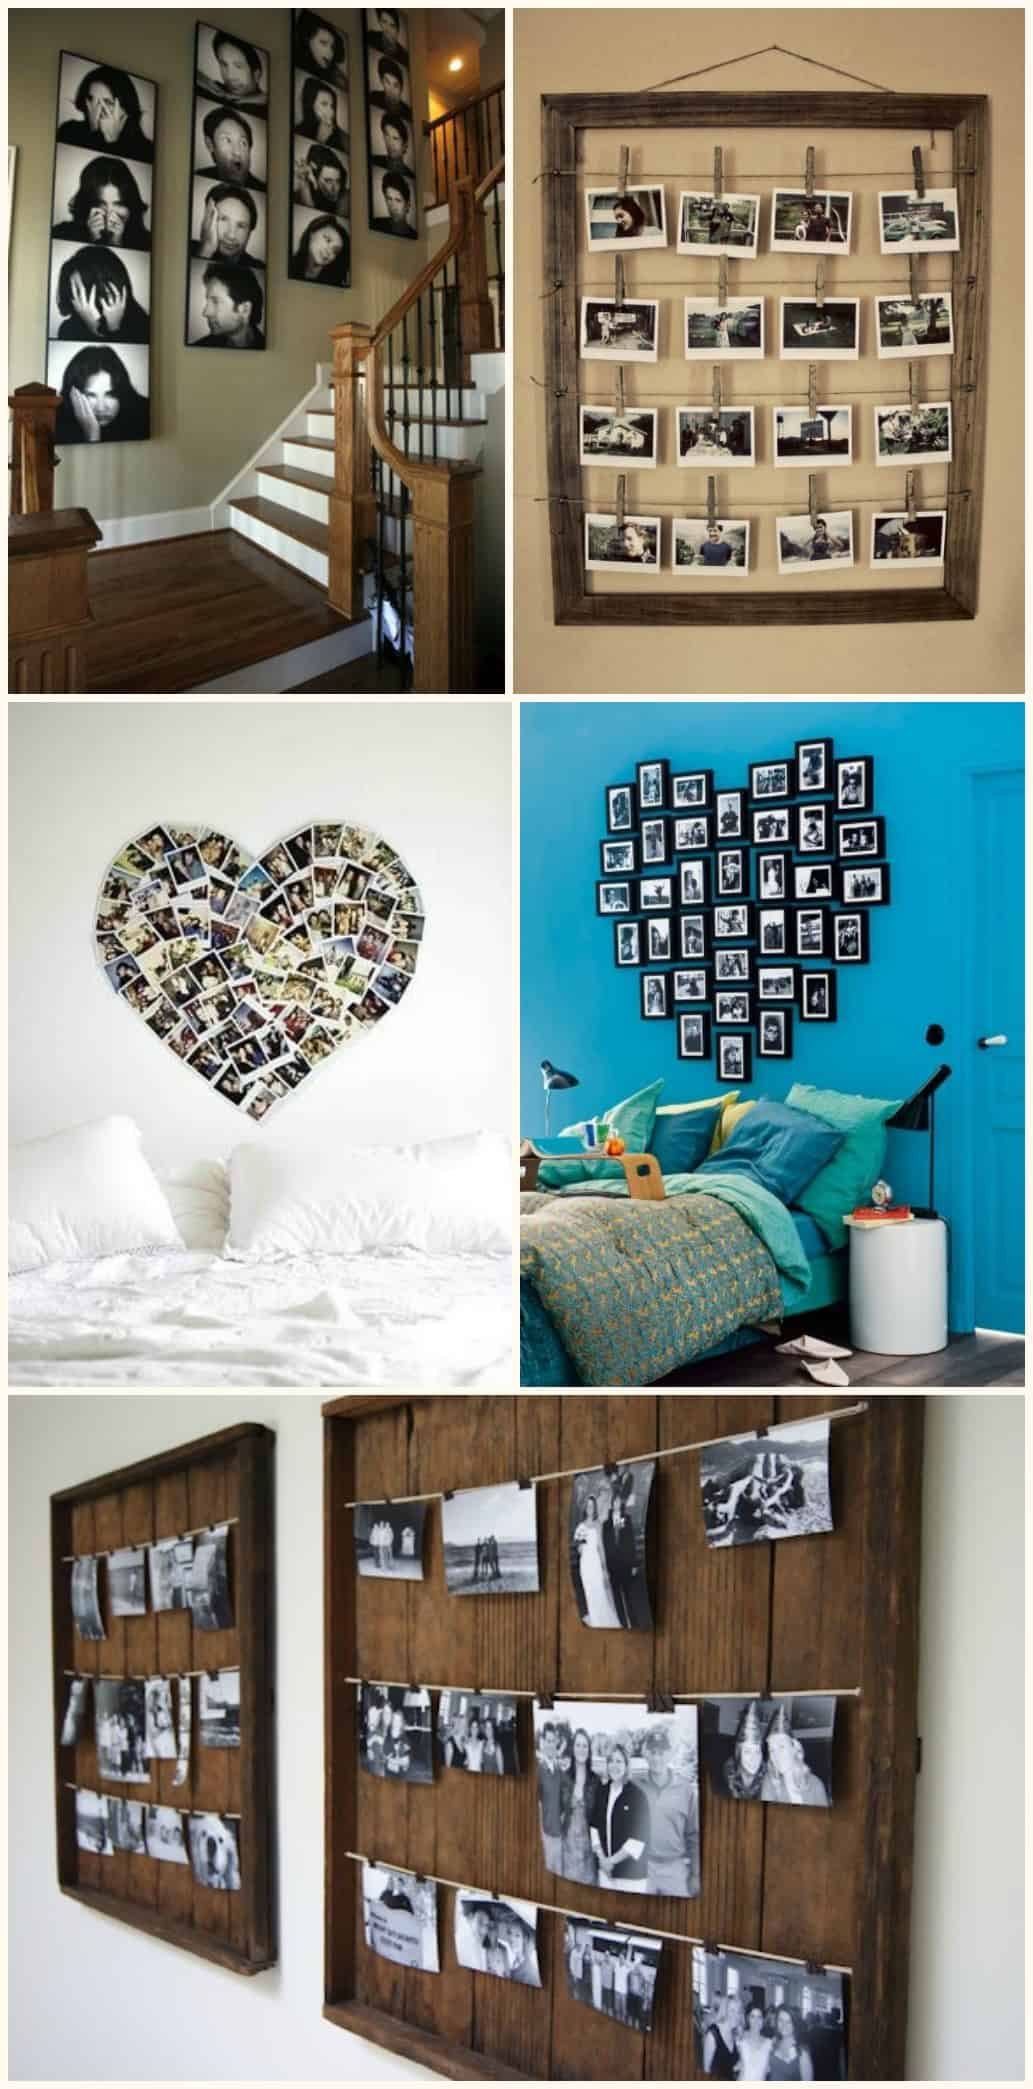 Diy 10 idee su come decorare una parete di casa for Decorare la camera da letto